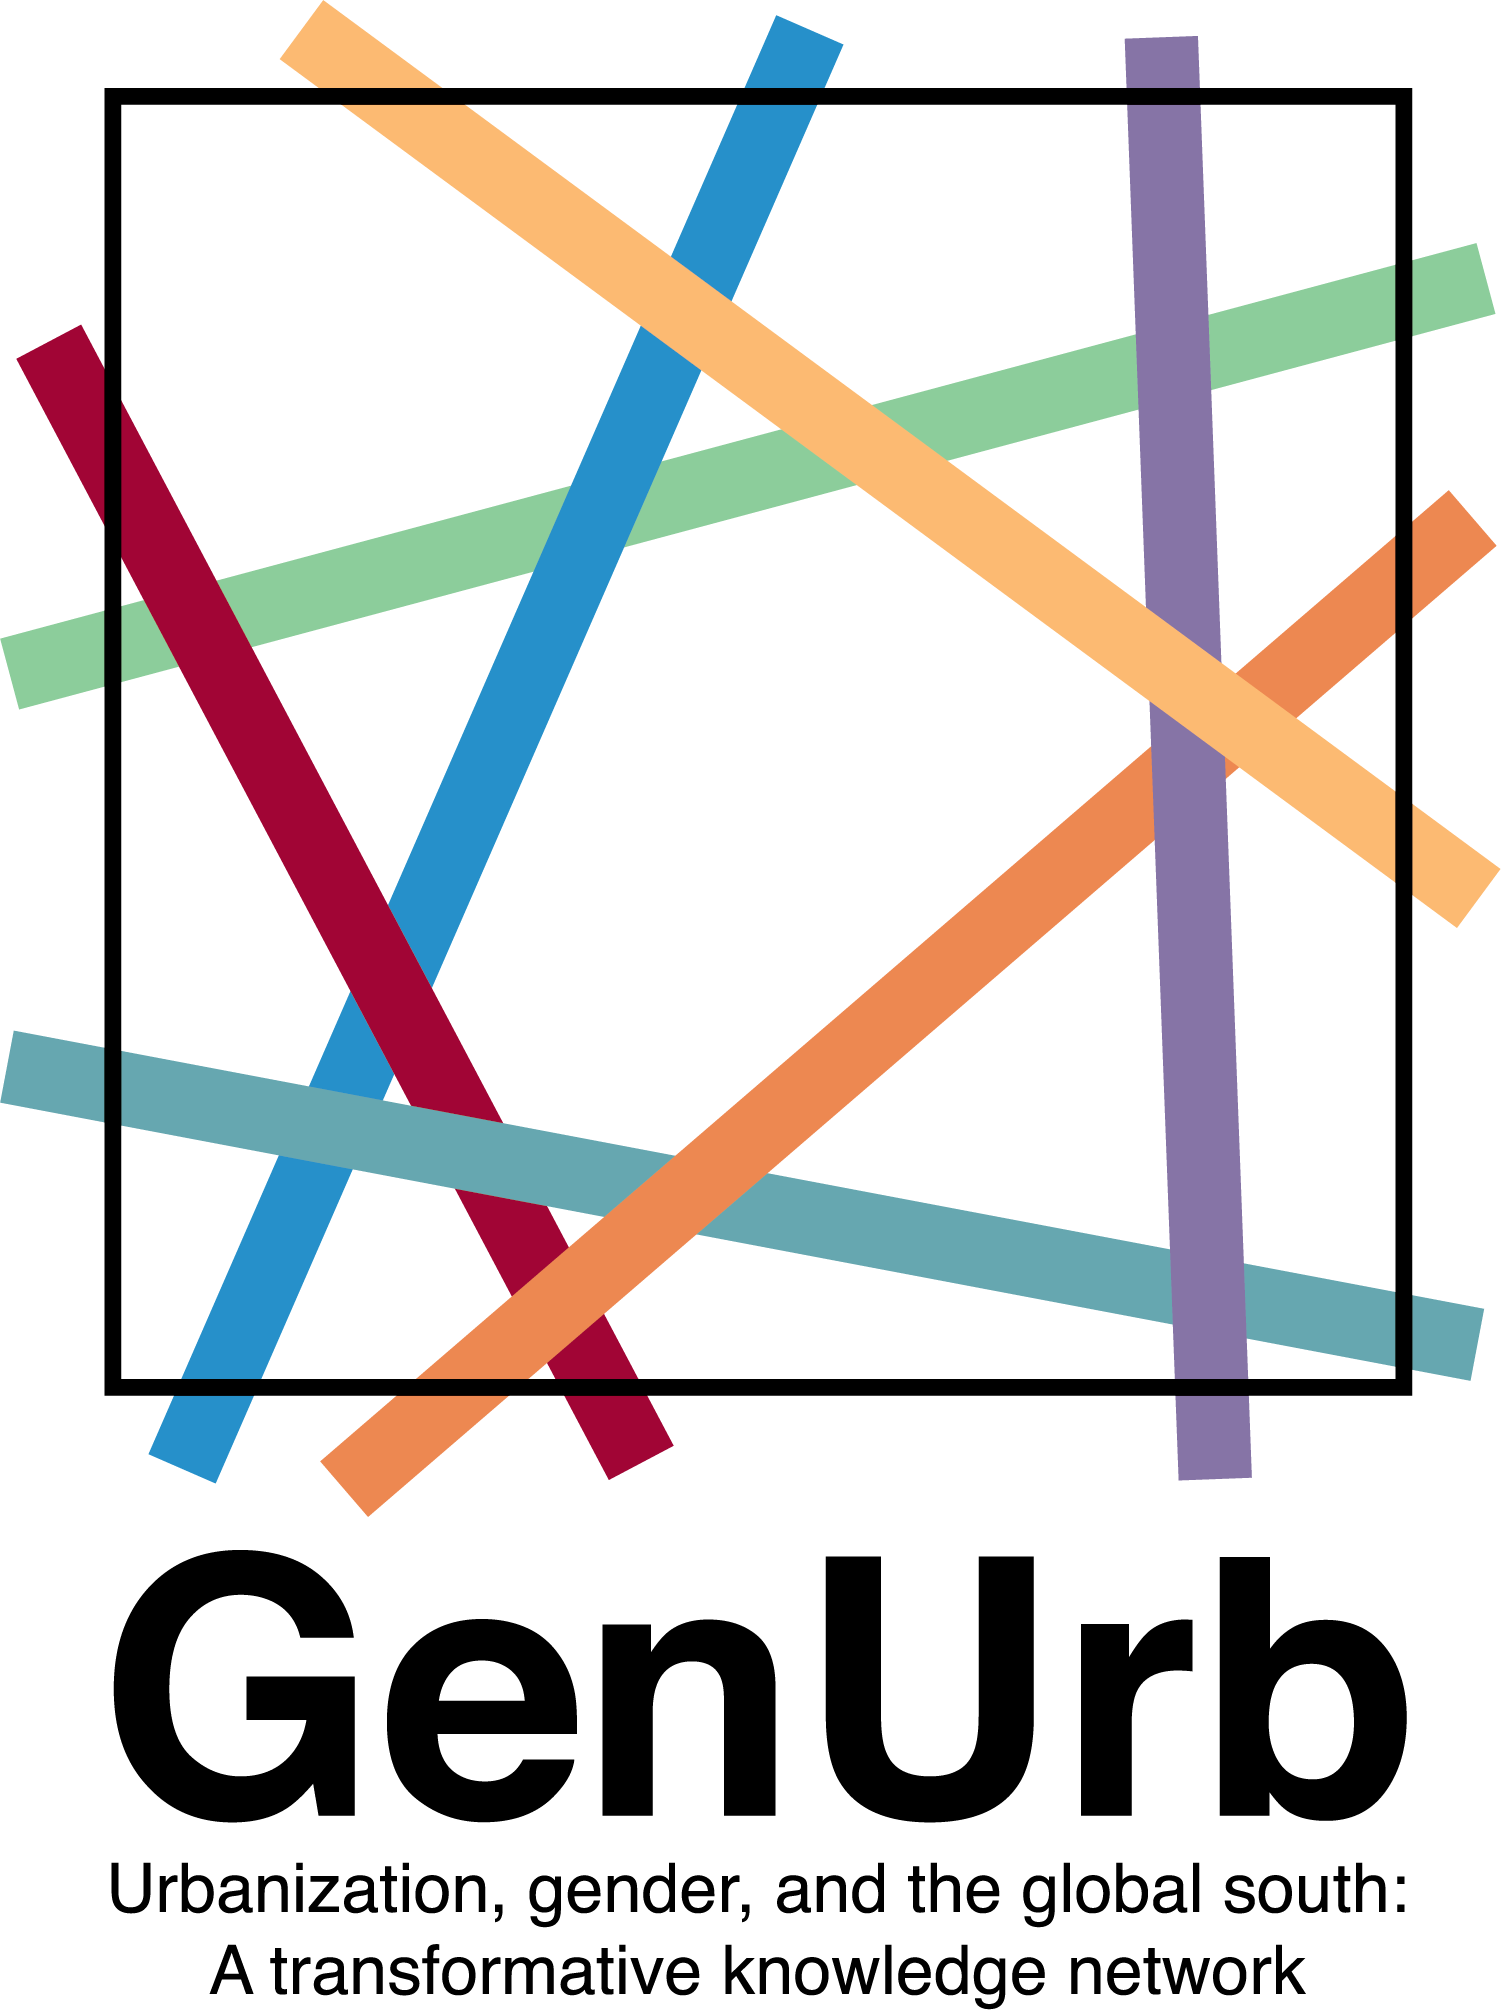 GenUrb_Colour_Transparent